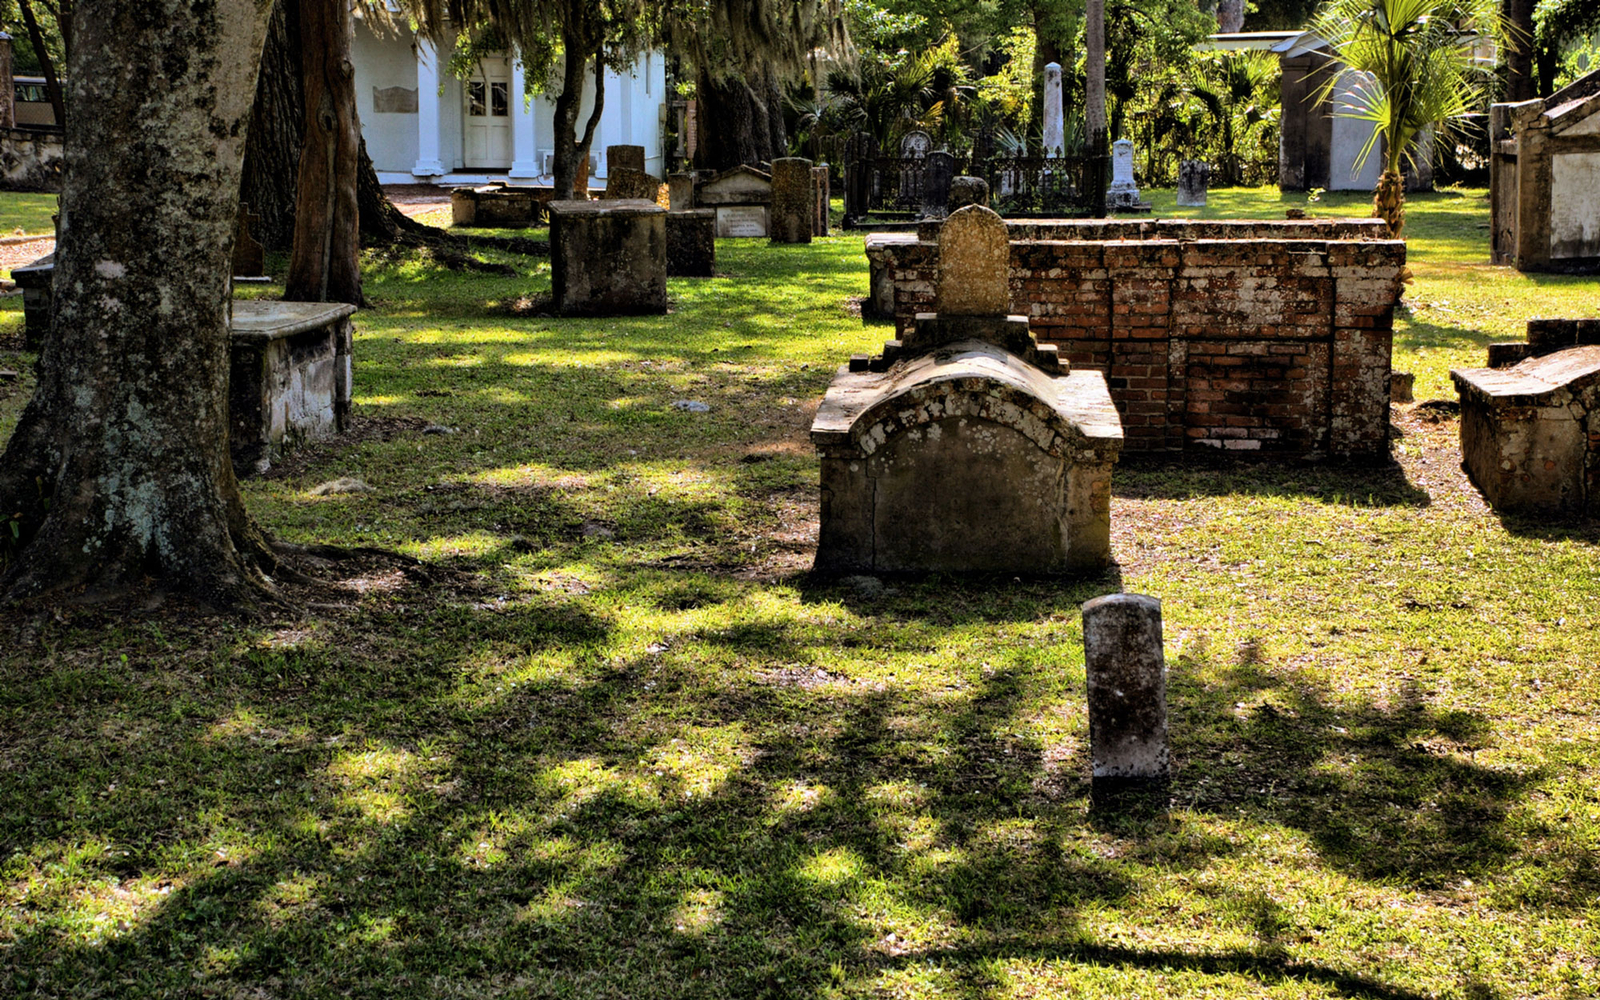 201310-w-americas-best-towns-for-halloween-20-st-augustine-florida